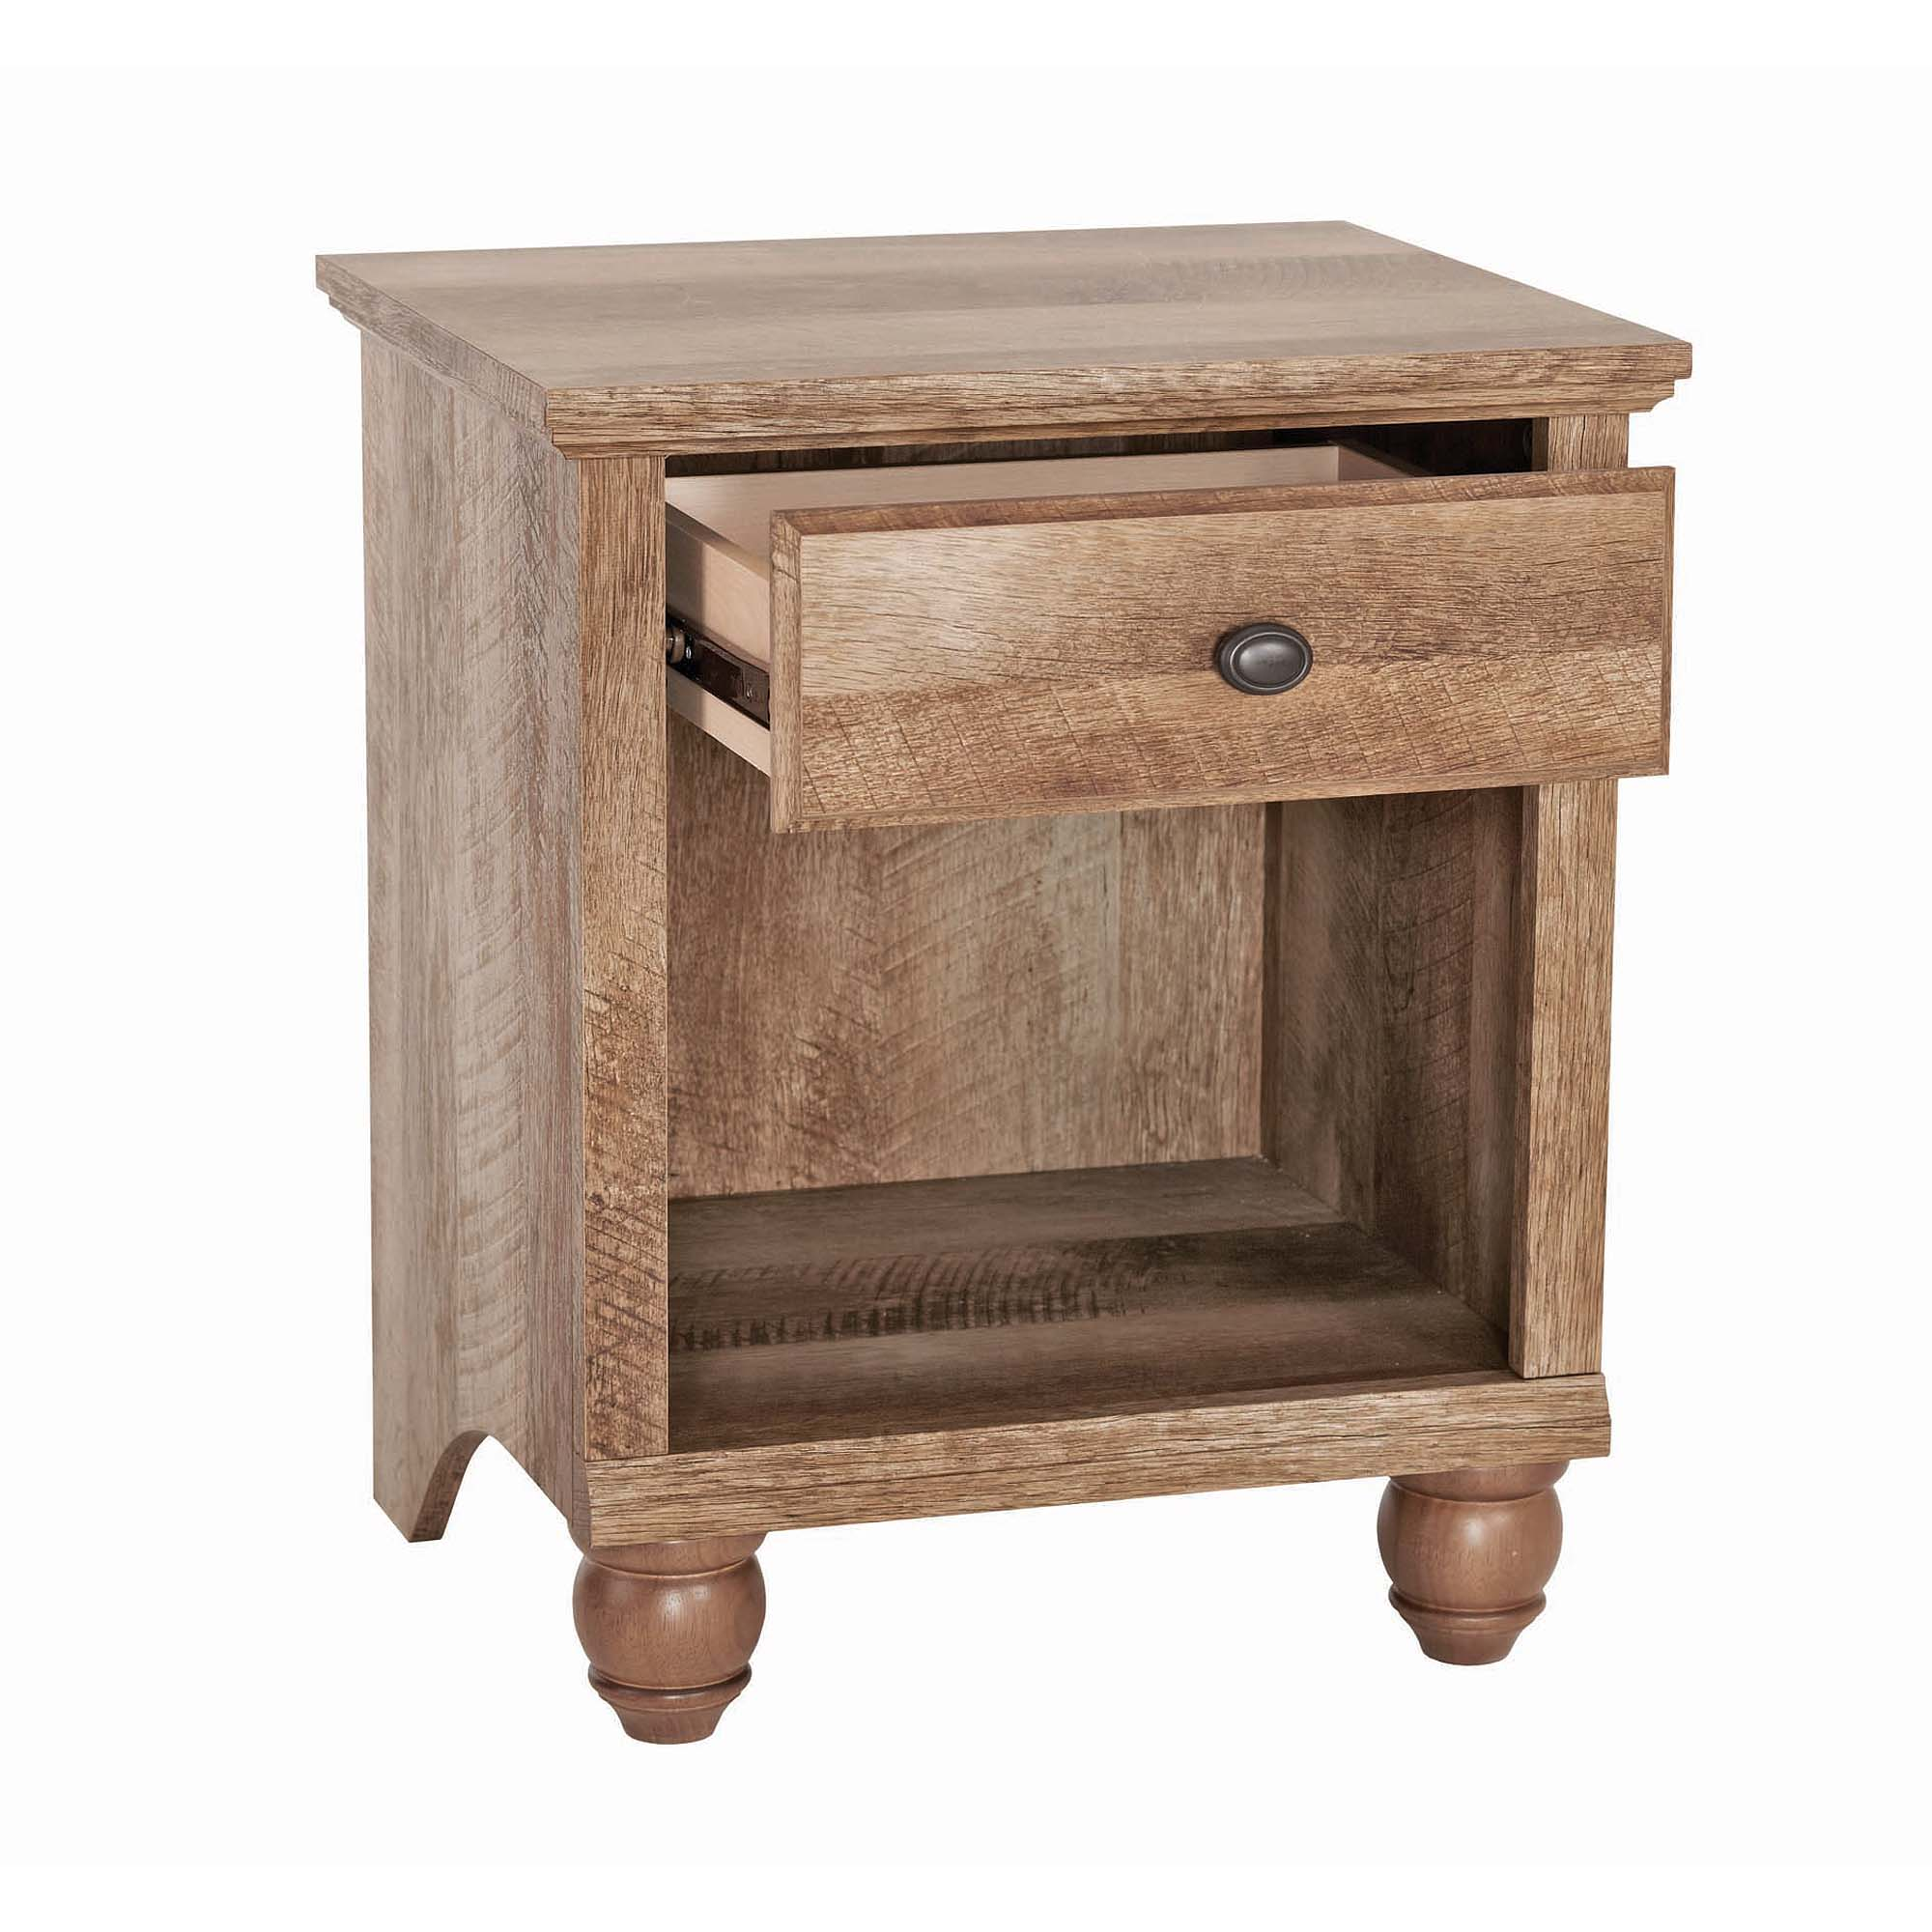 better homes gardens crossmill accent table weathered finish small pine pub tops mid century modern legs bird dresser and changing wrought iron nesting tables white console